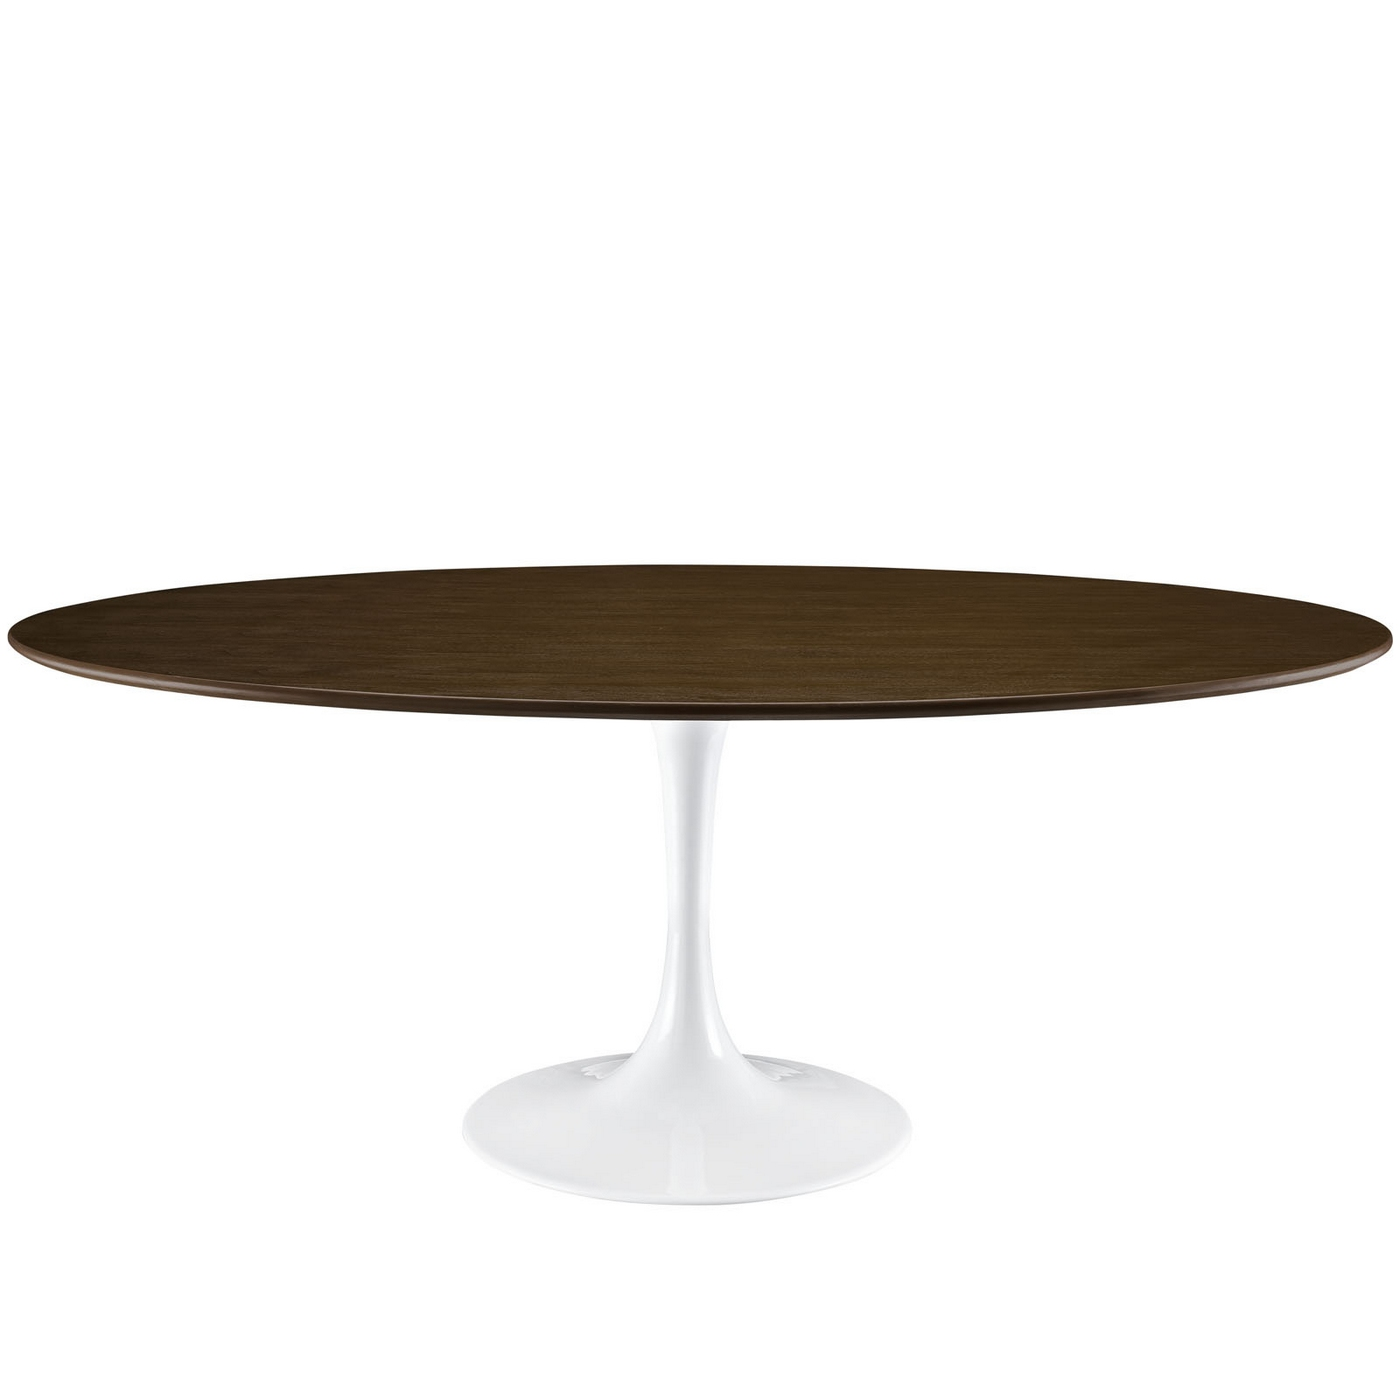 Lippa modern 78 round walnut dining table with lacquered for Modern round dining table